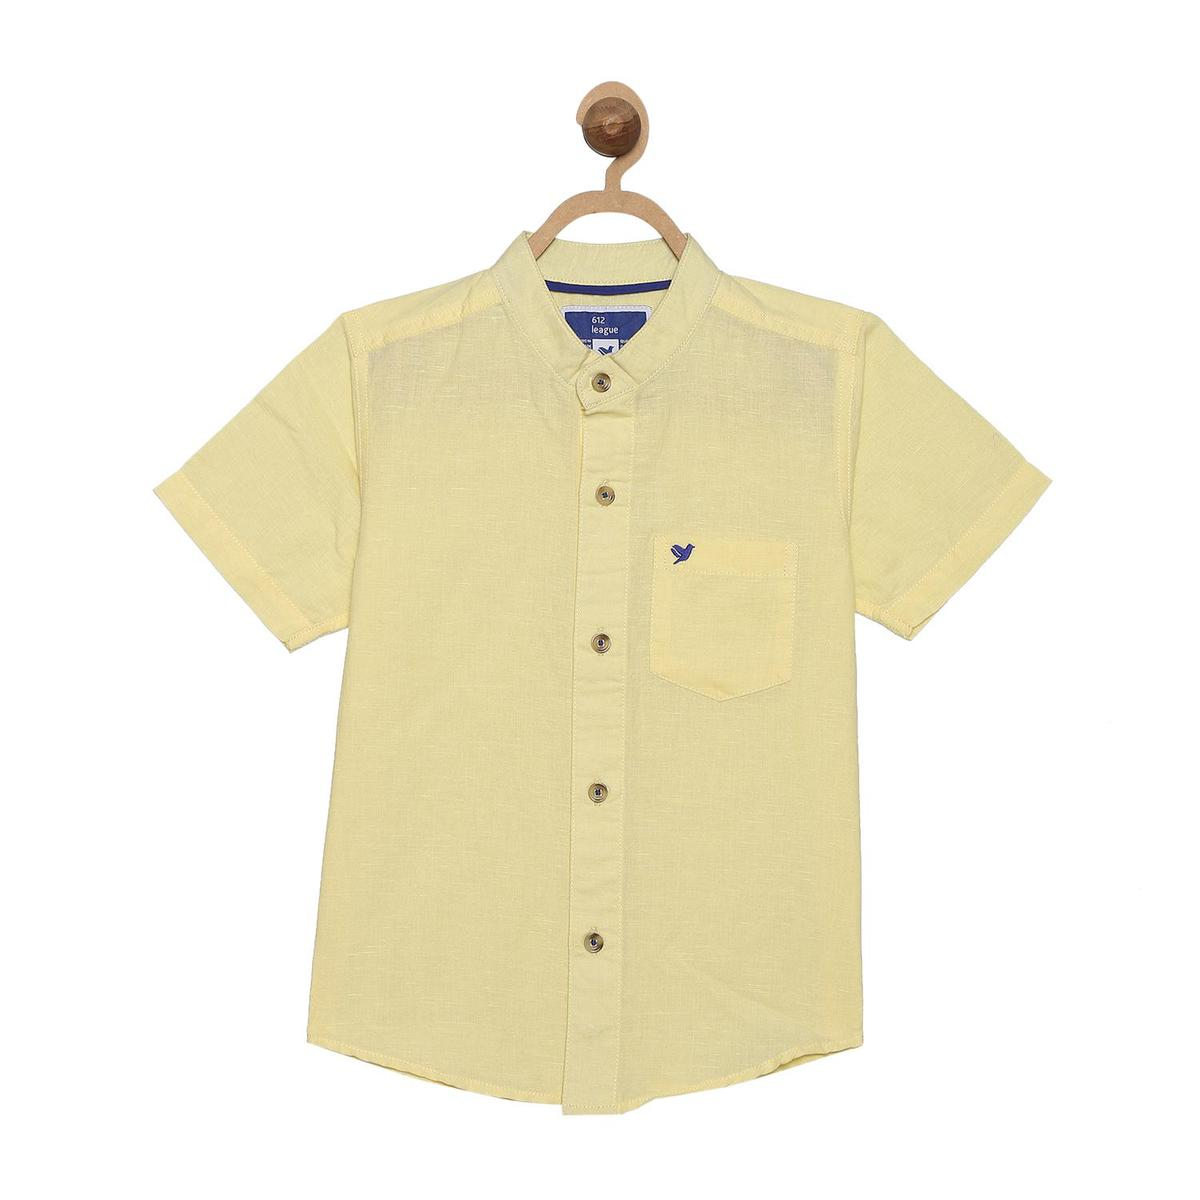 612 League - Boy's Yellow Colored Woven Solid Shirt